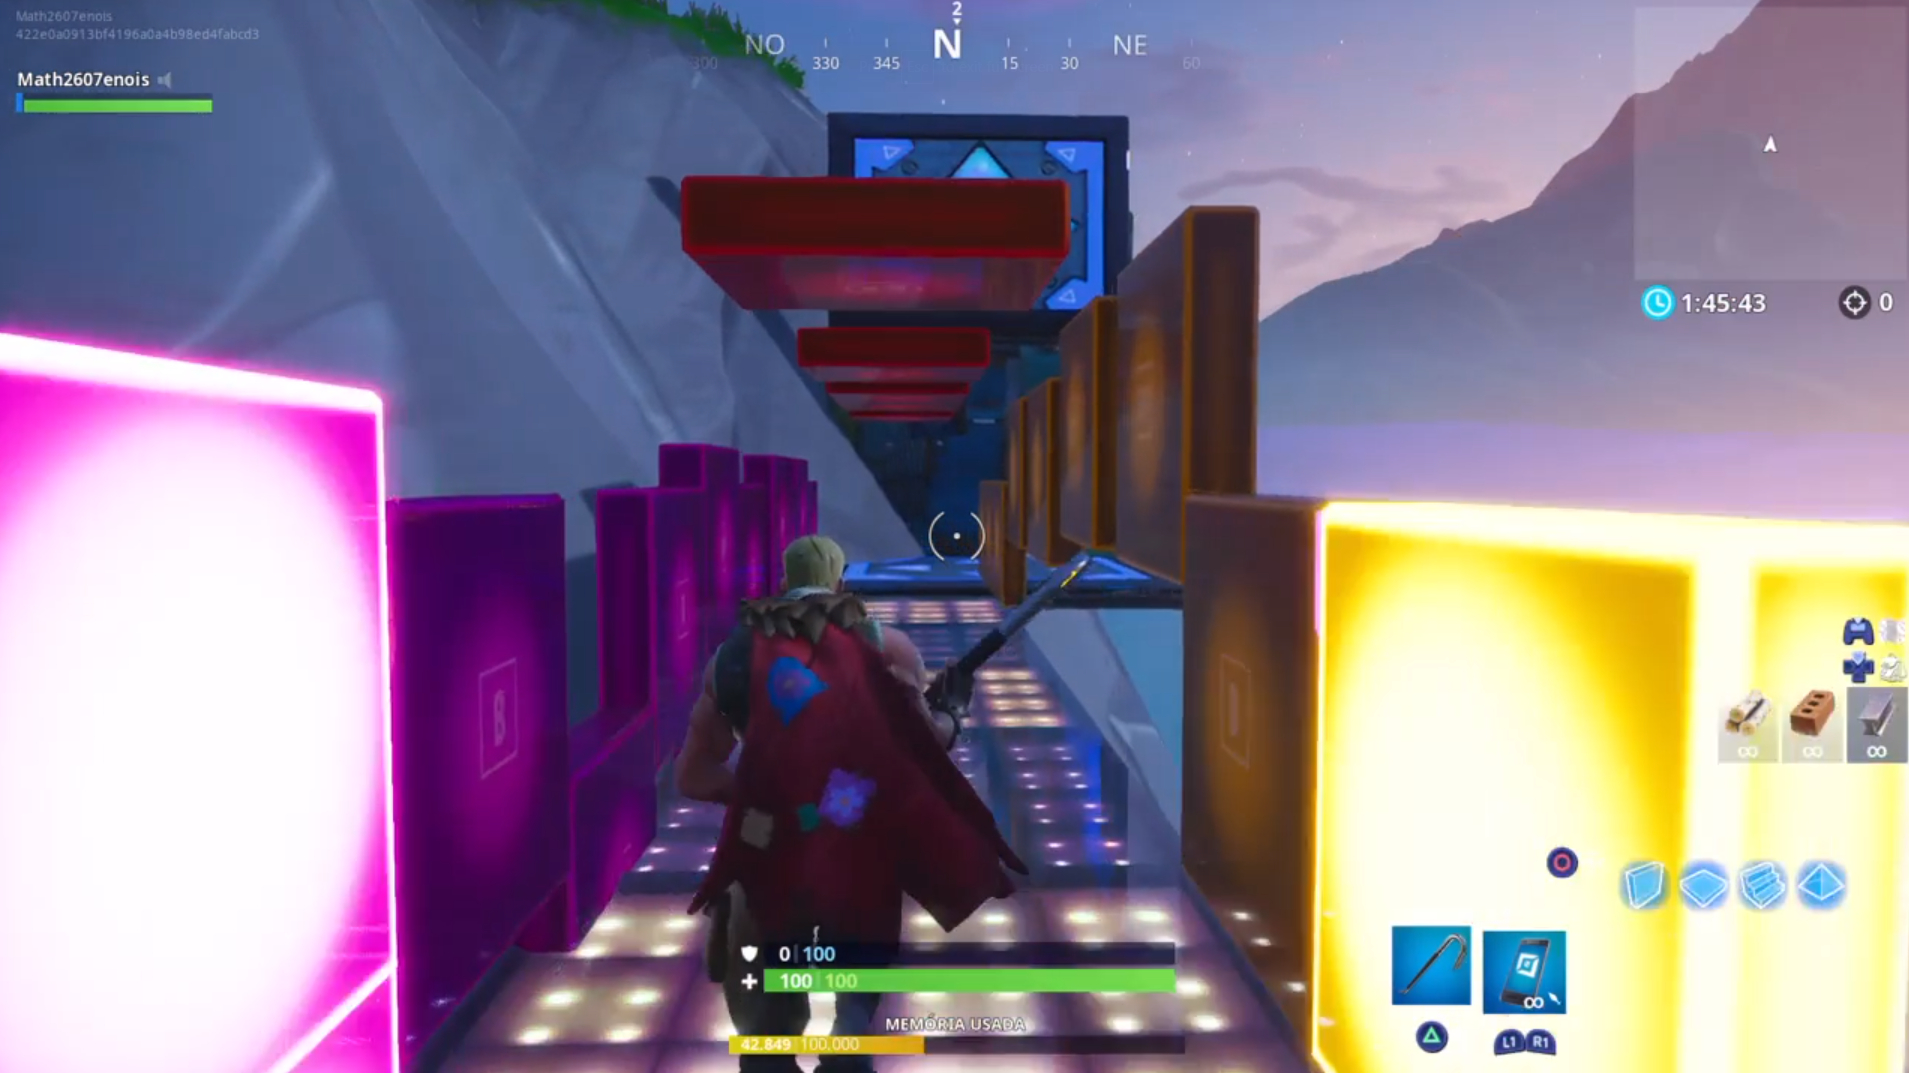 Fortnite is all about making music now, so put down those guns | PC